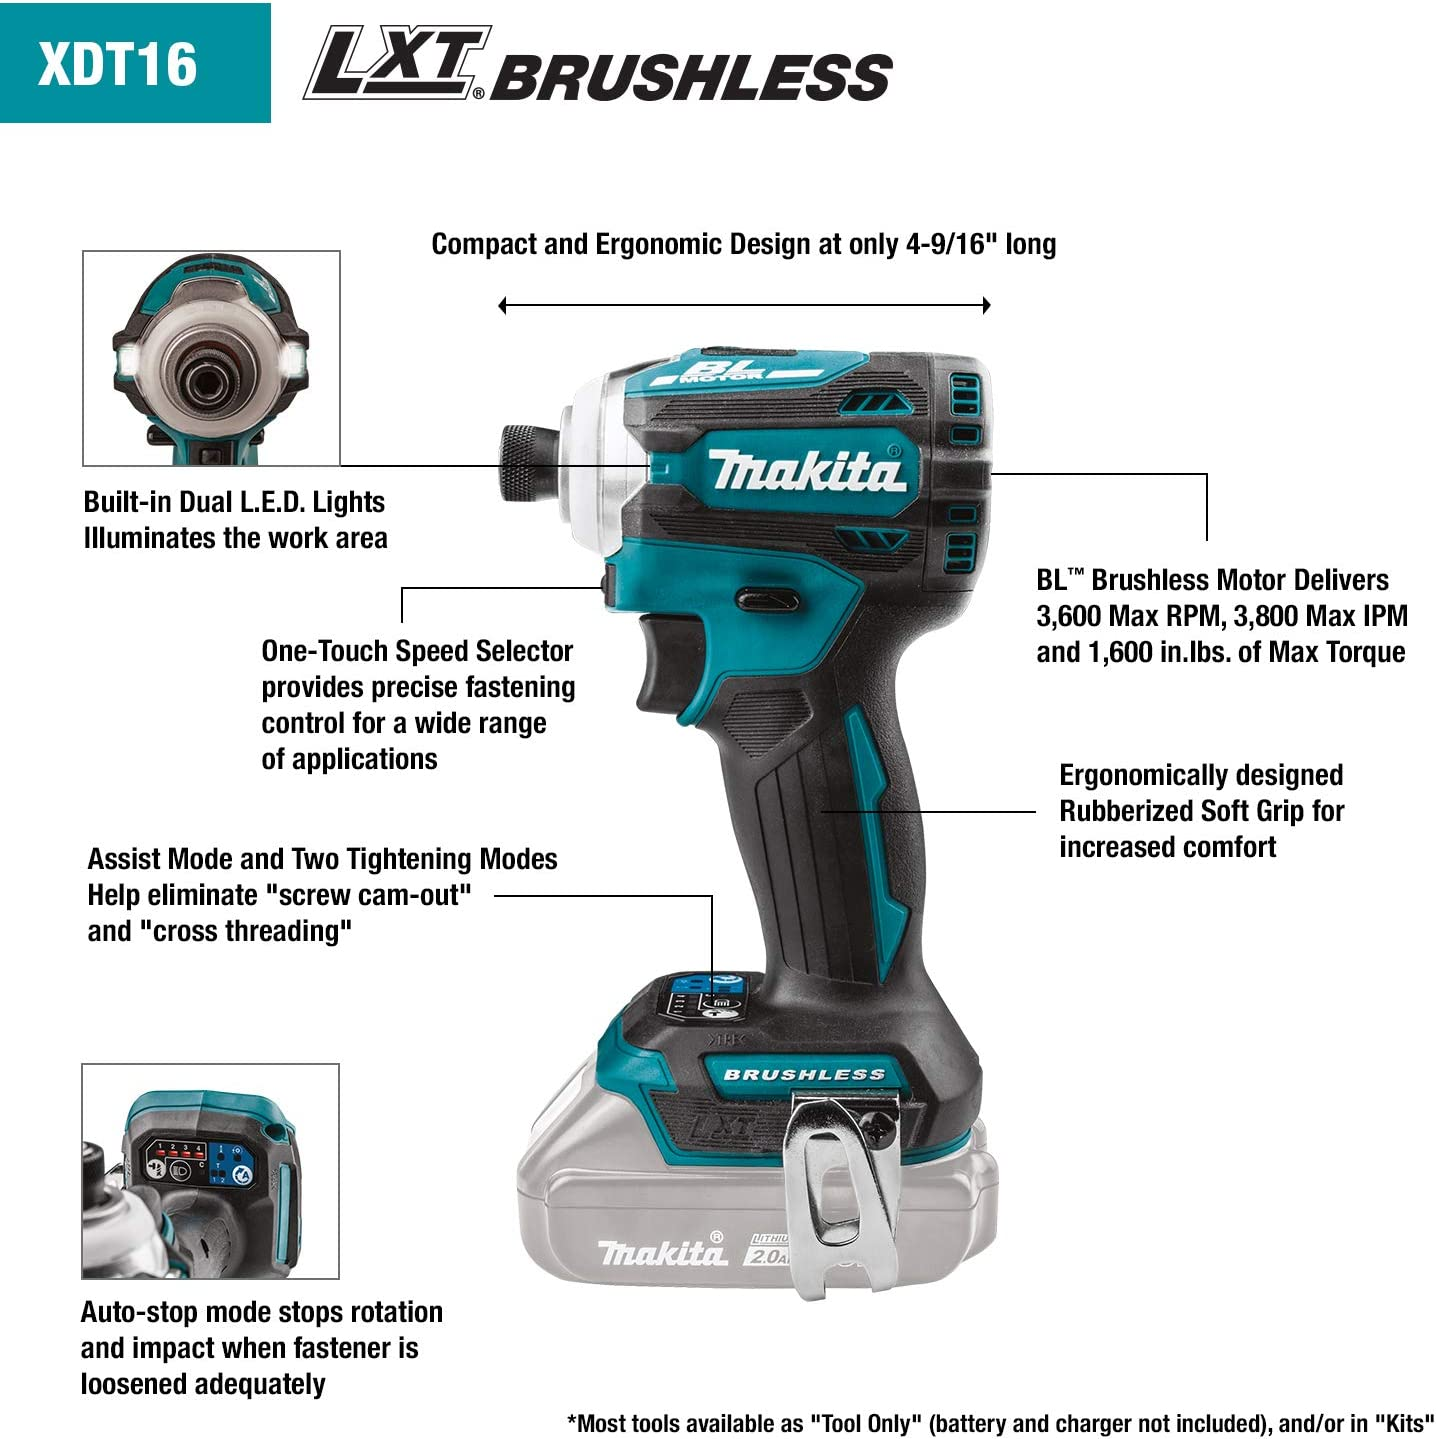 The XDT16Z offers users four speeds and Makita's exclusive Quick-Shift mode to enhance tightening controls. Behind these 4 speeds, Makita has made technology for users. When the user feels this speed is lacking, this tool will optimize between speed and torque. This means I can use it for the smoothest screws.